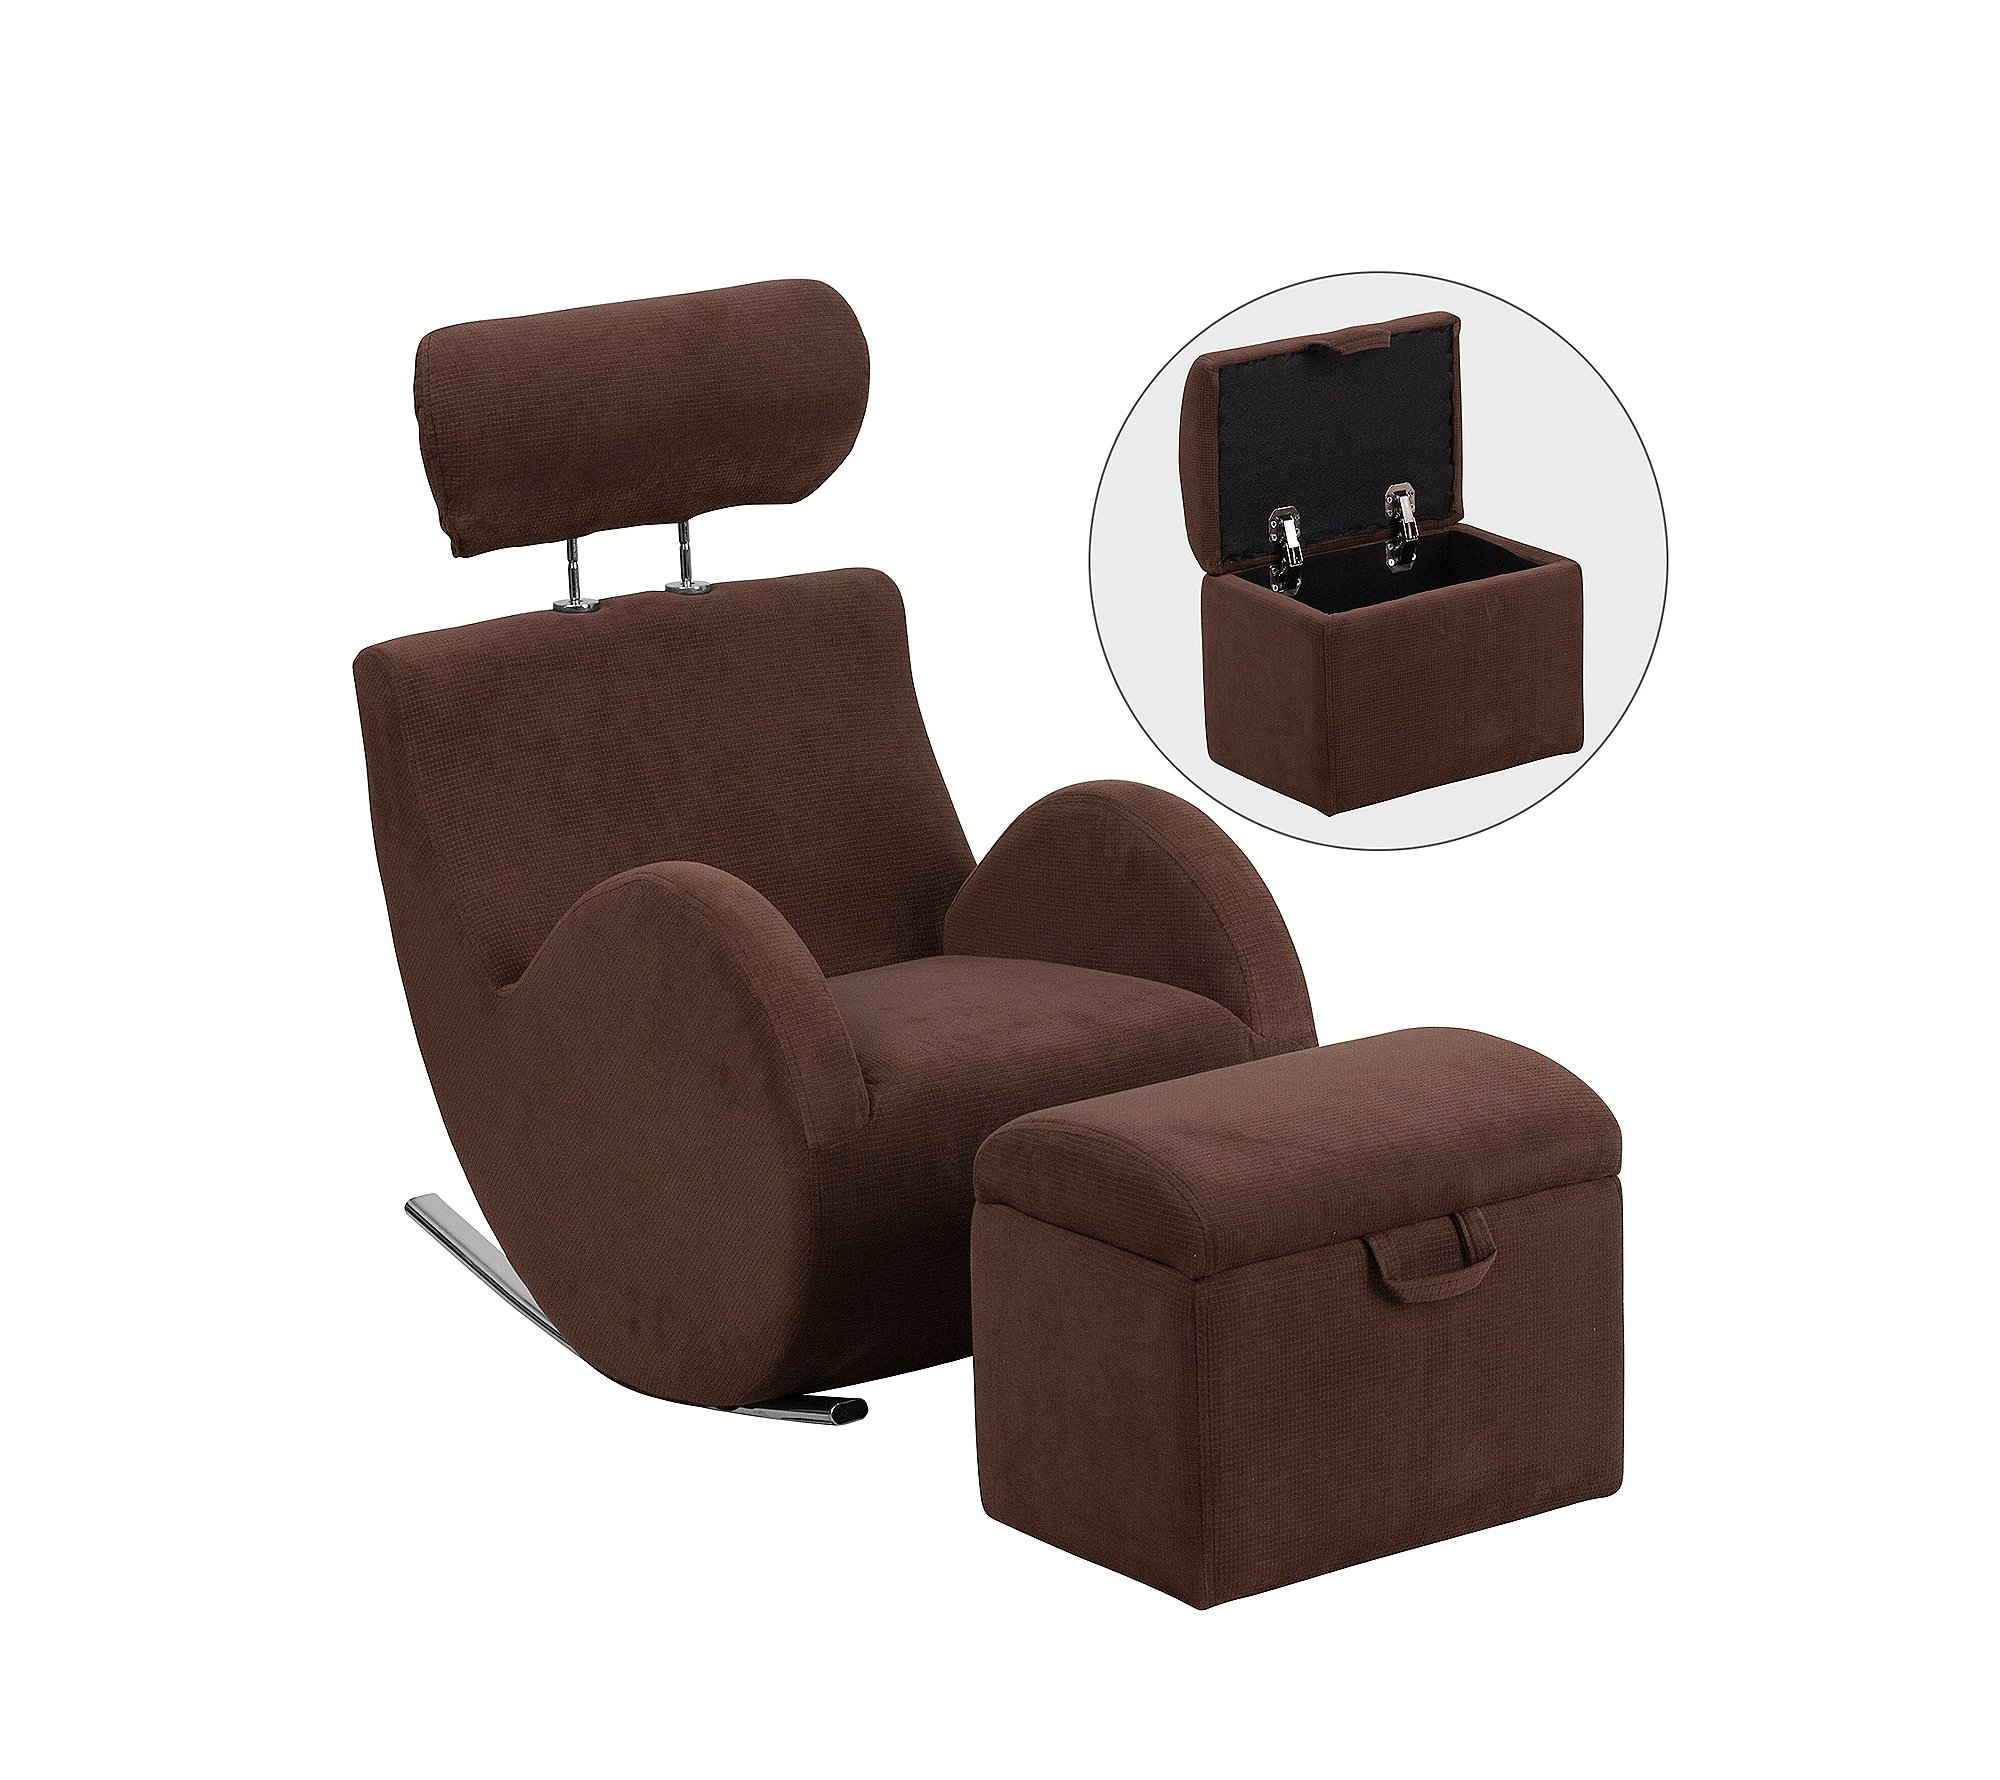 fit review ottoman good rated amazing best support swivel soft spaces touch slanted for chair vanilla and chairs recliner comfort small